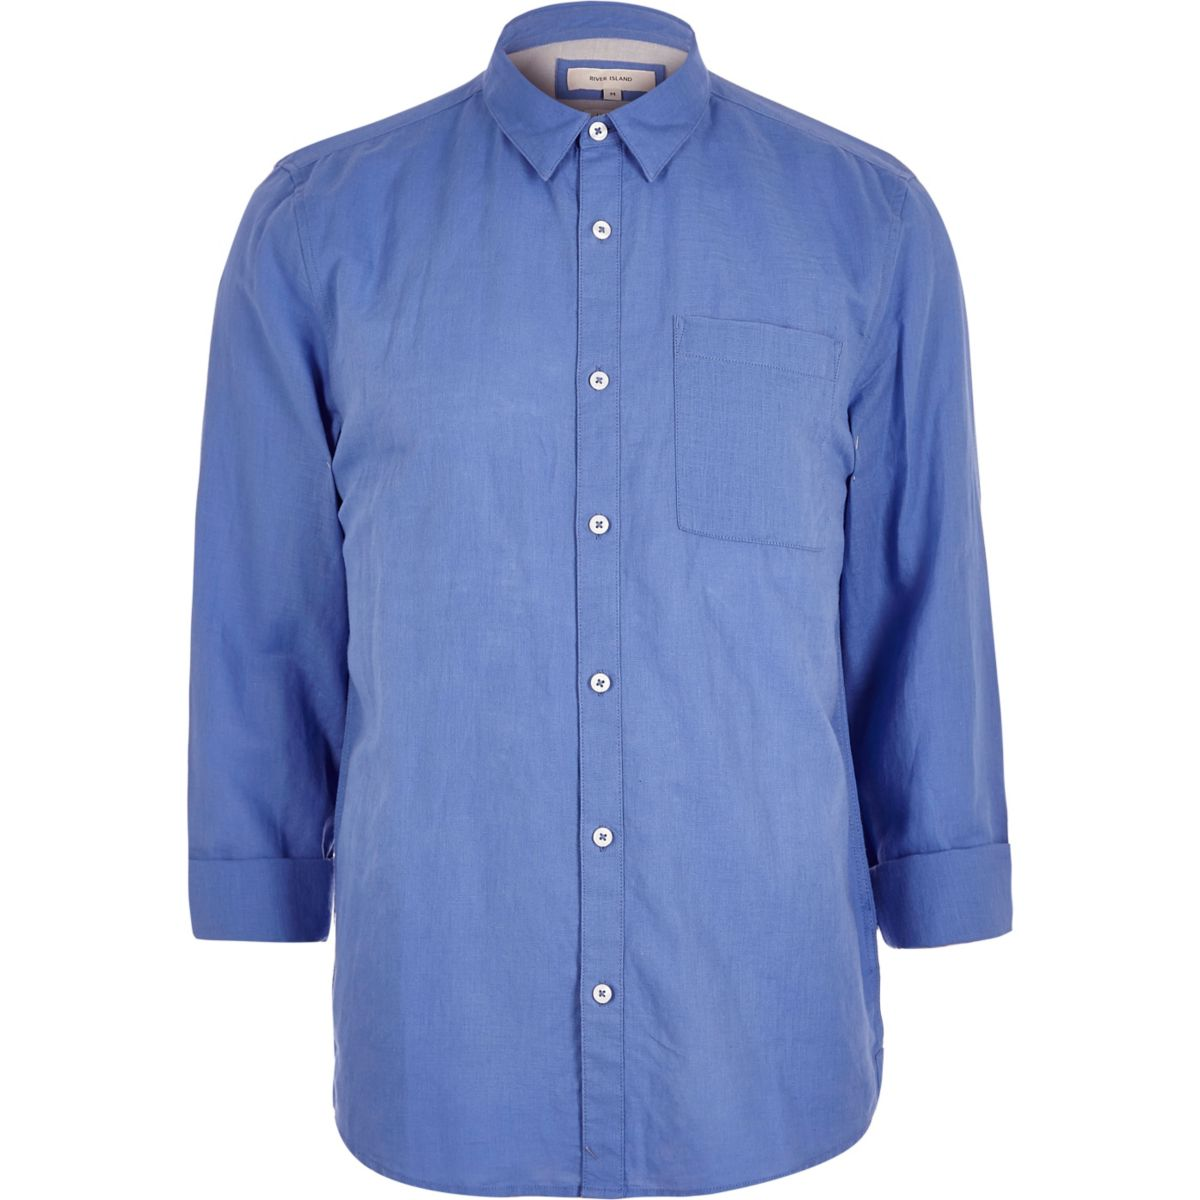 Blue linen-rich shirt